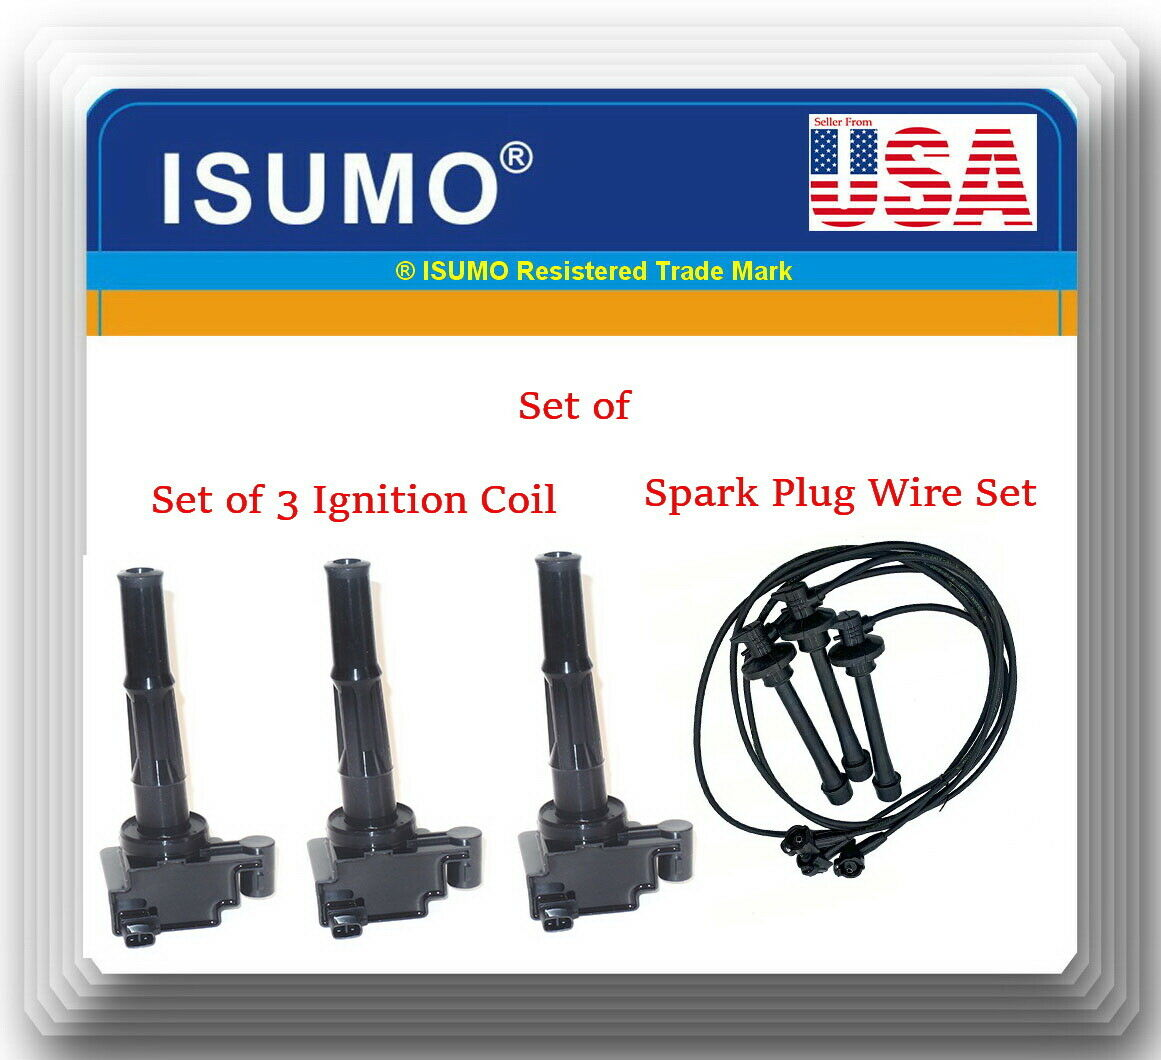 Set of Ignition Coil /& Spark Plug Wire set Fits 4Runner T100 Tacoma Tundra 3.4L